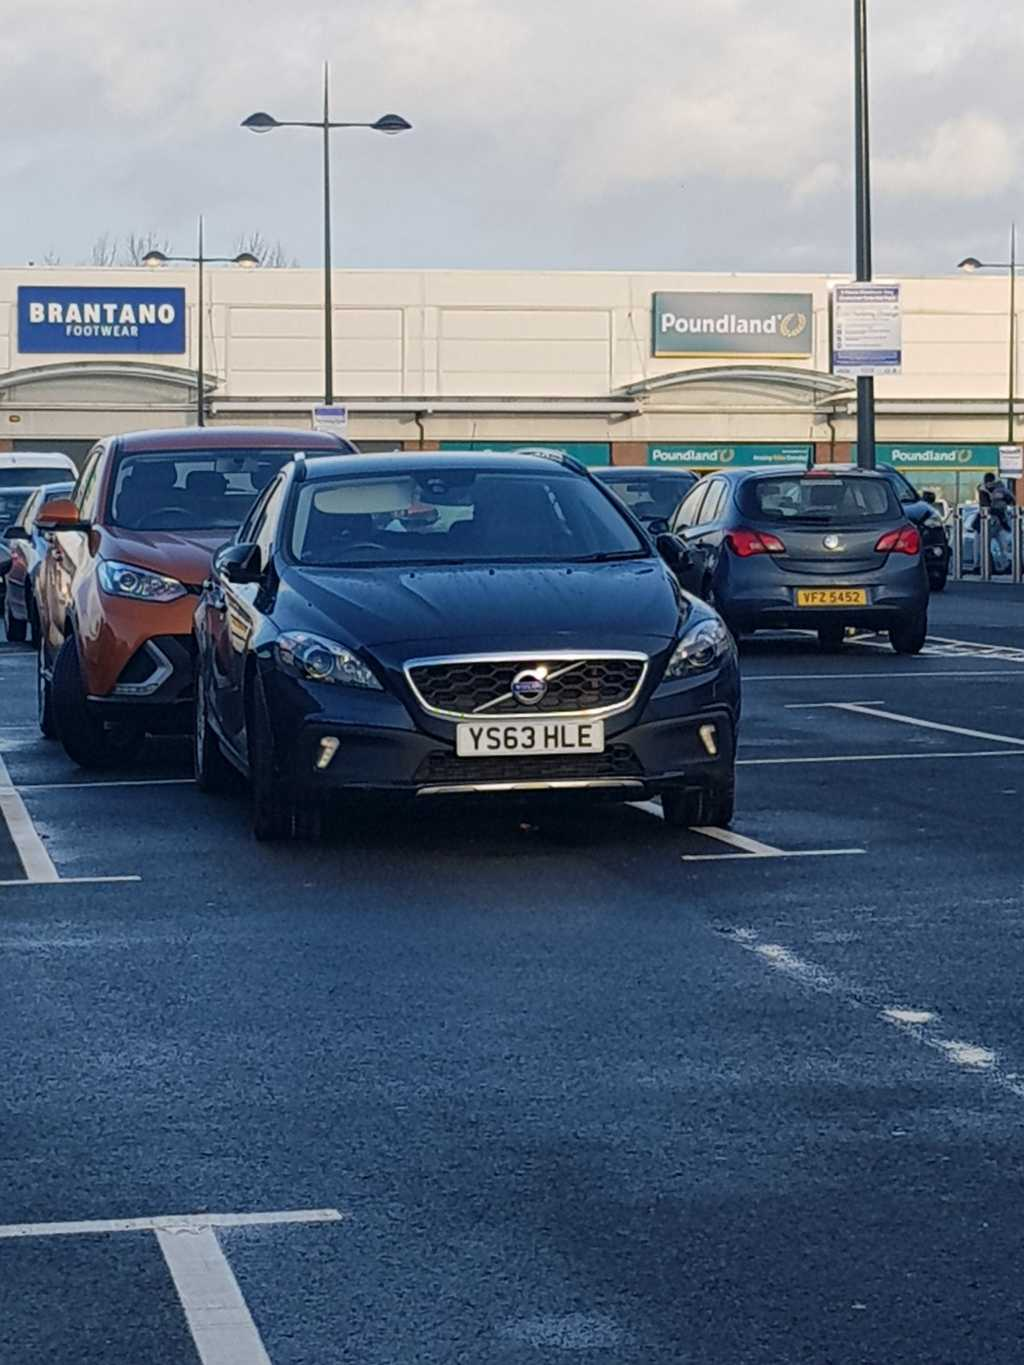 YS63 HLE displaying Inconsiderate Parking